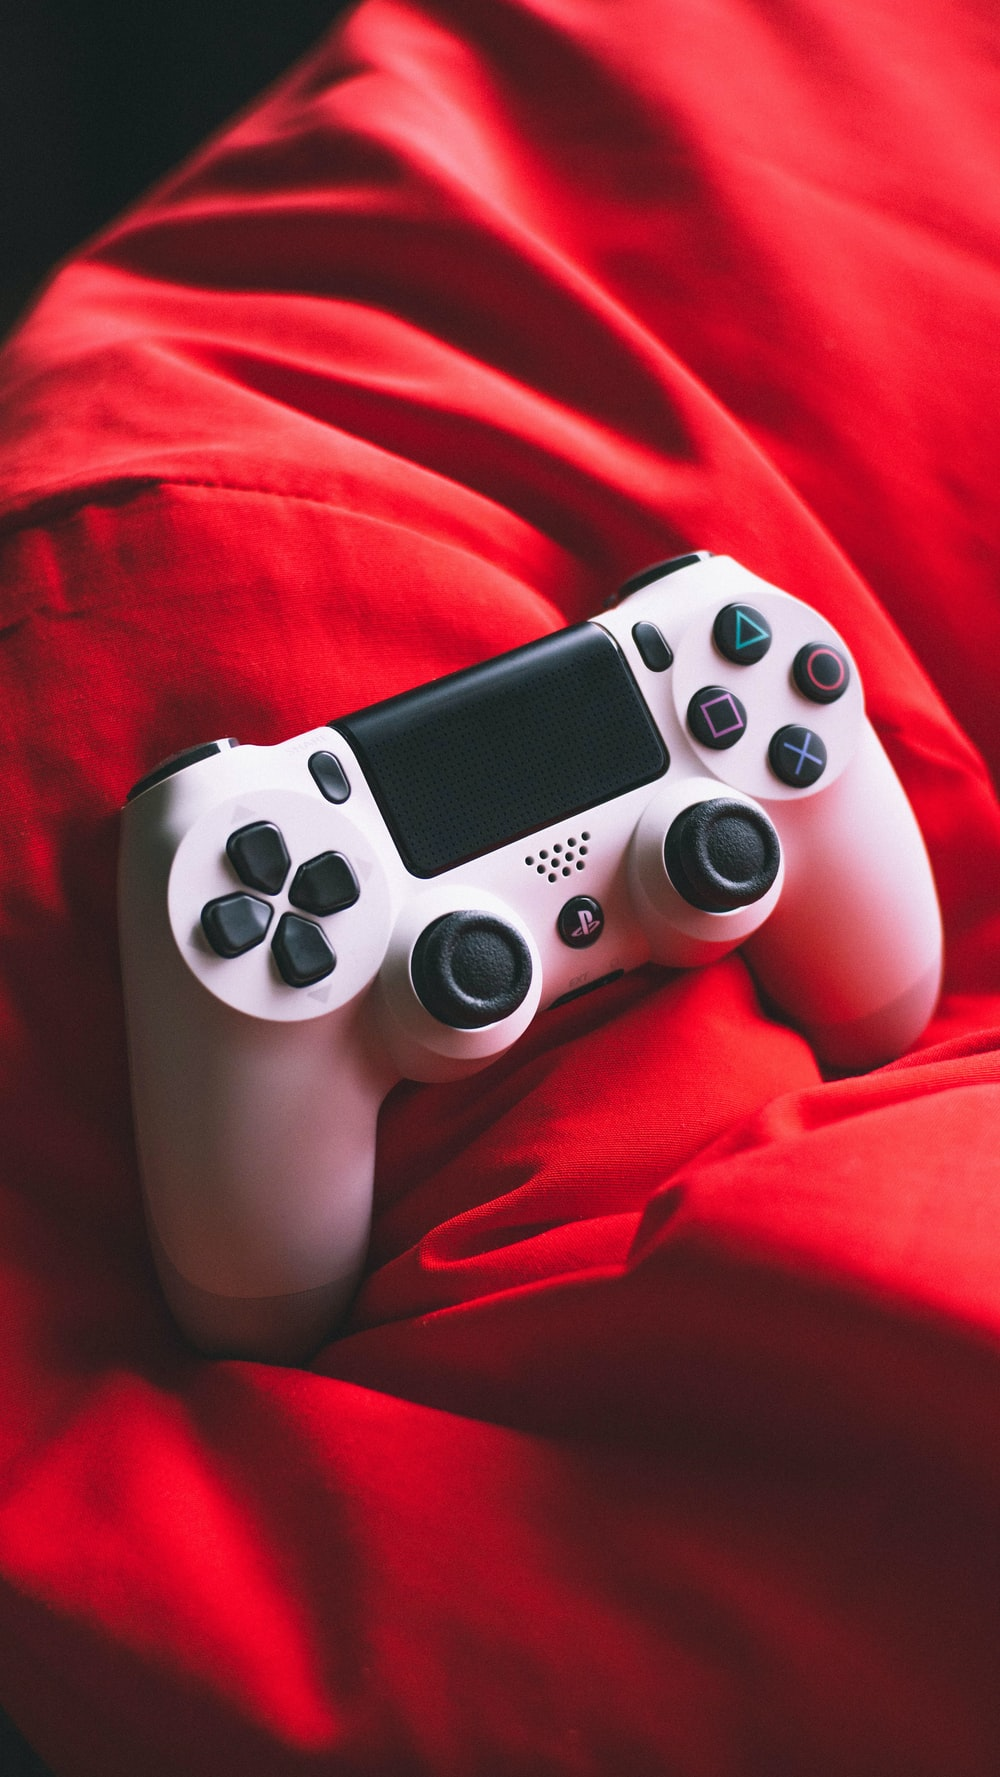 white and black sony ps 4 controller